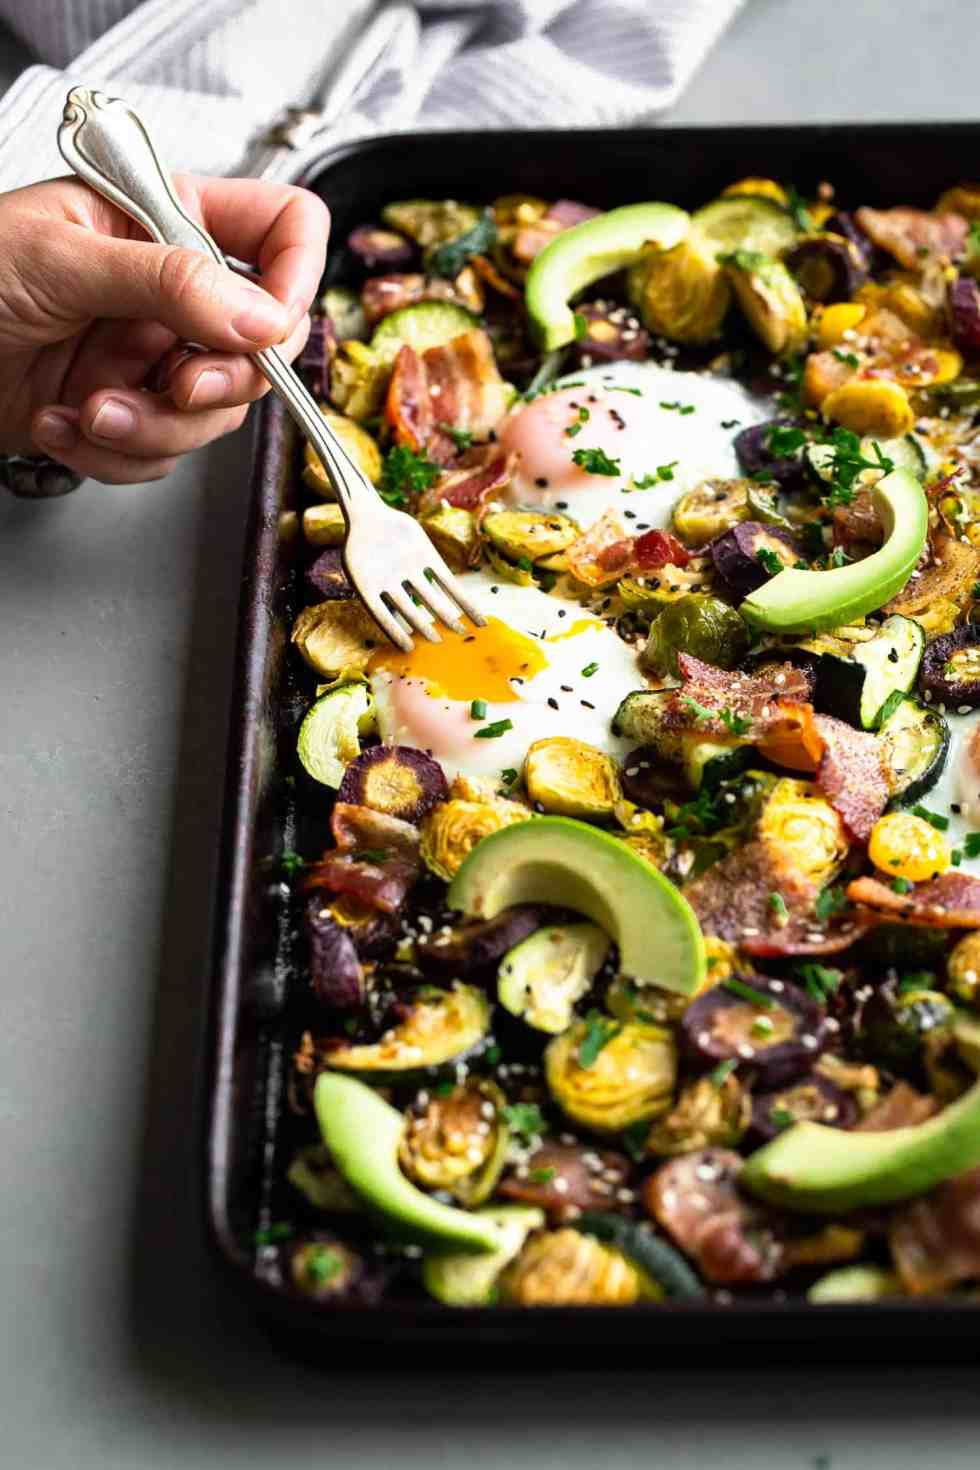 a paleo one pan breakfast on a sheet pan with eggs, avocado and vegetables and a fork digging in